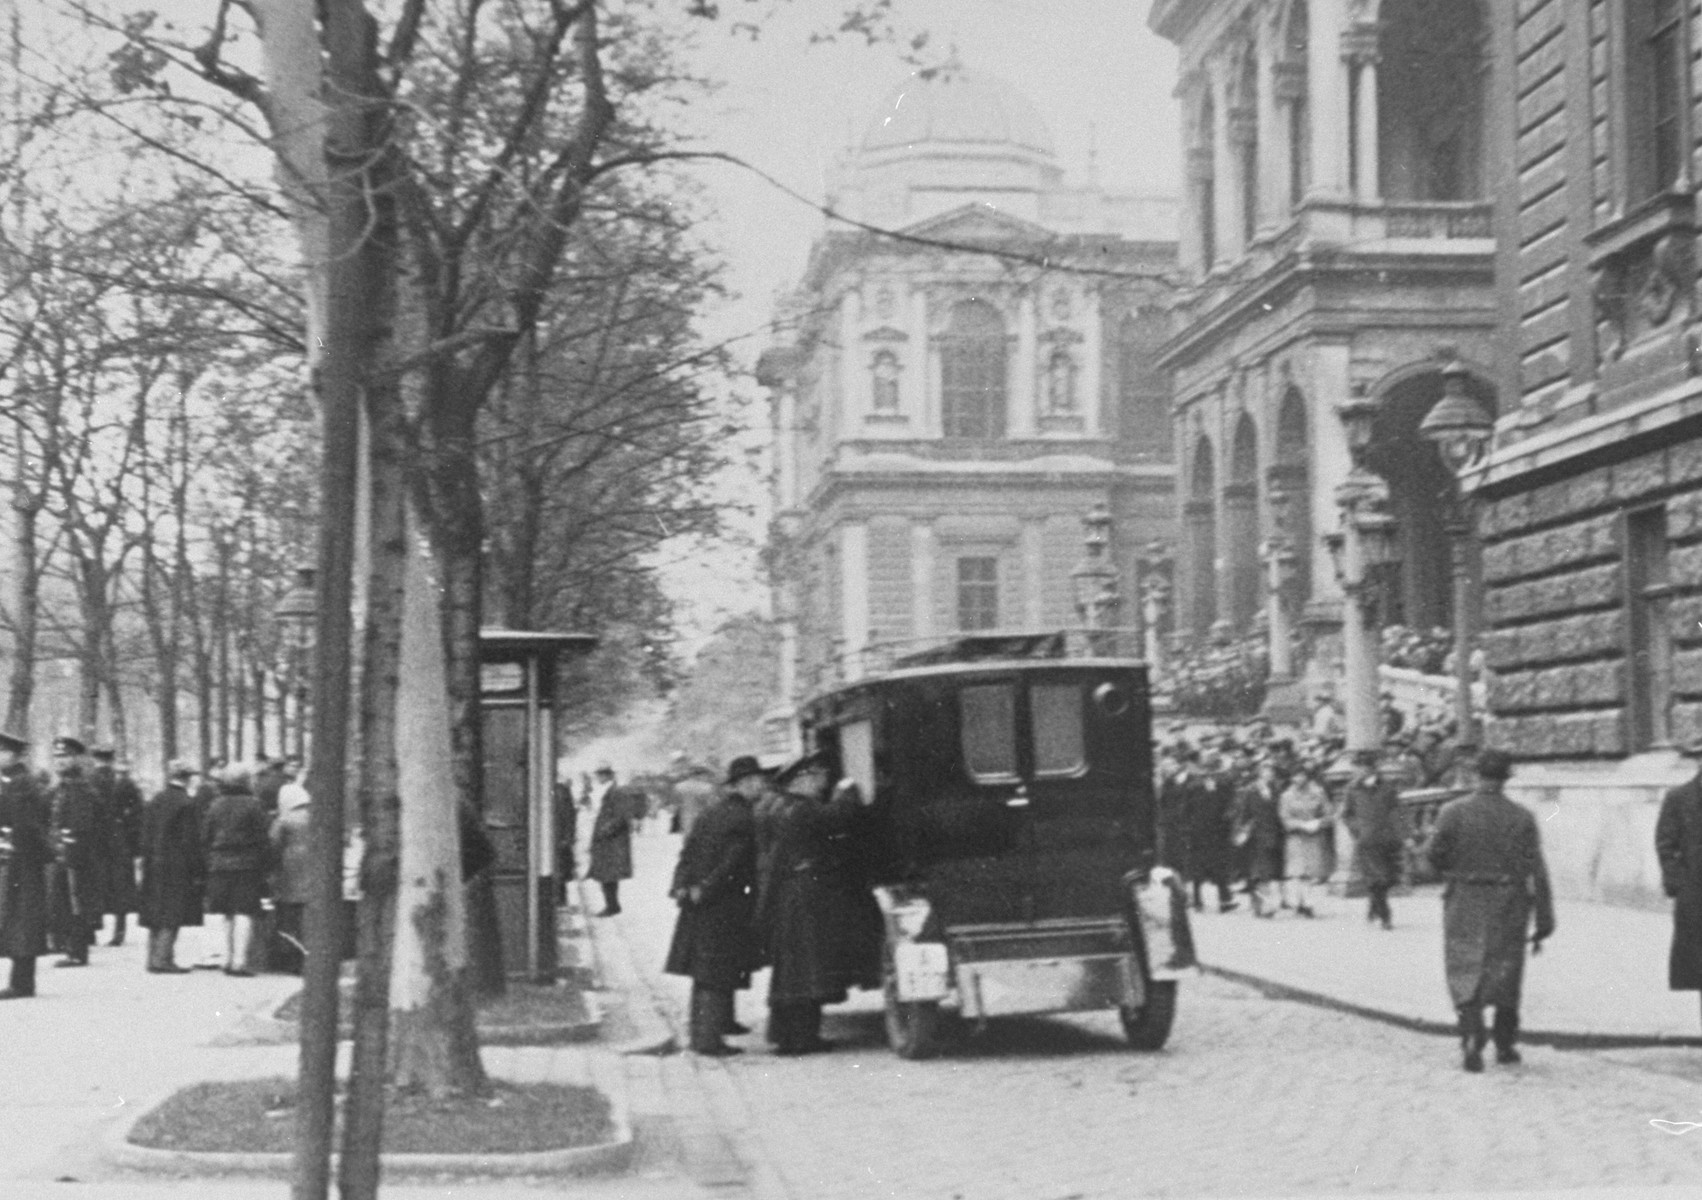 An ambulance takes students wounded during riots at the University of Vienna to the hospital. The riots occurred after Nazi attempts to prevent Jews from entering the University.